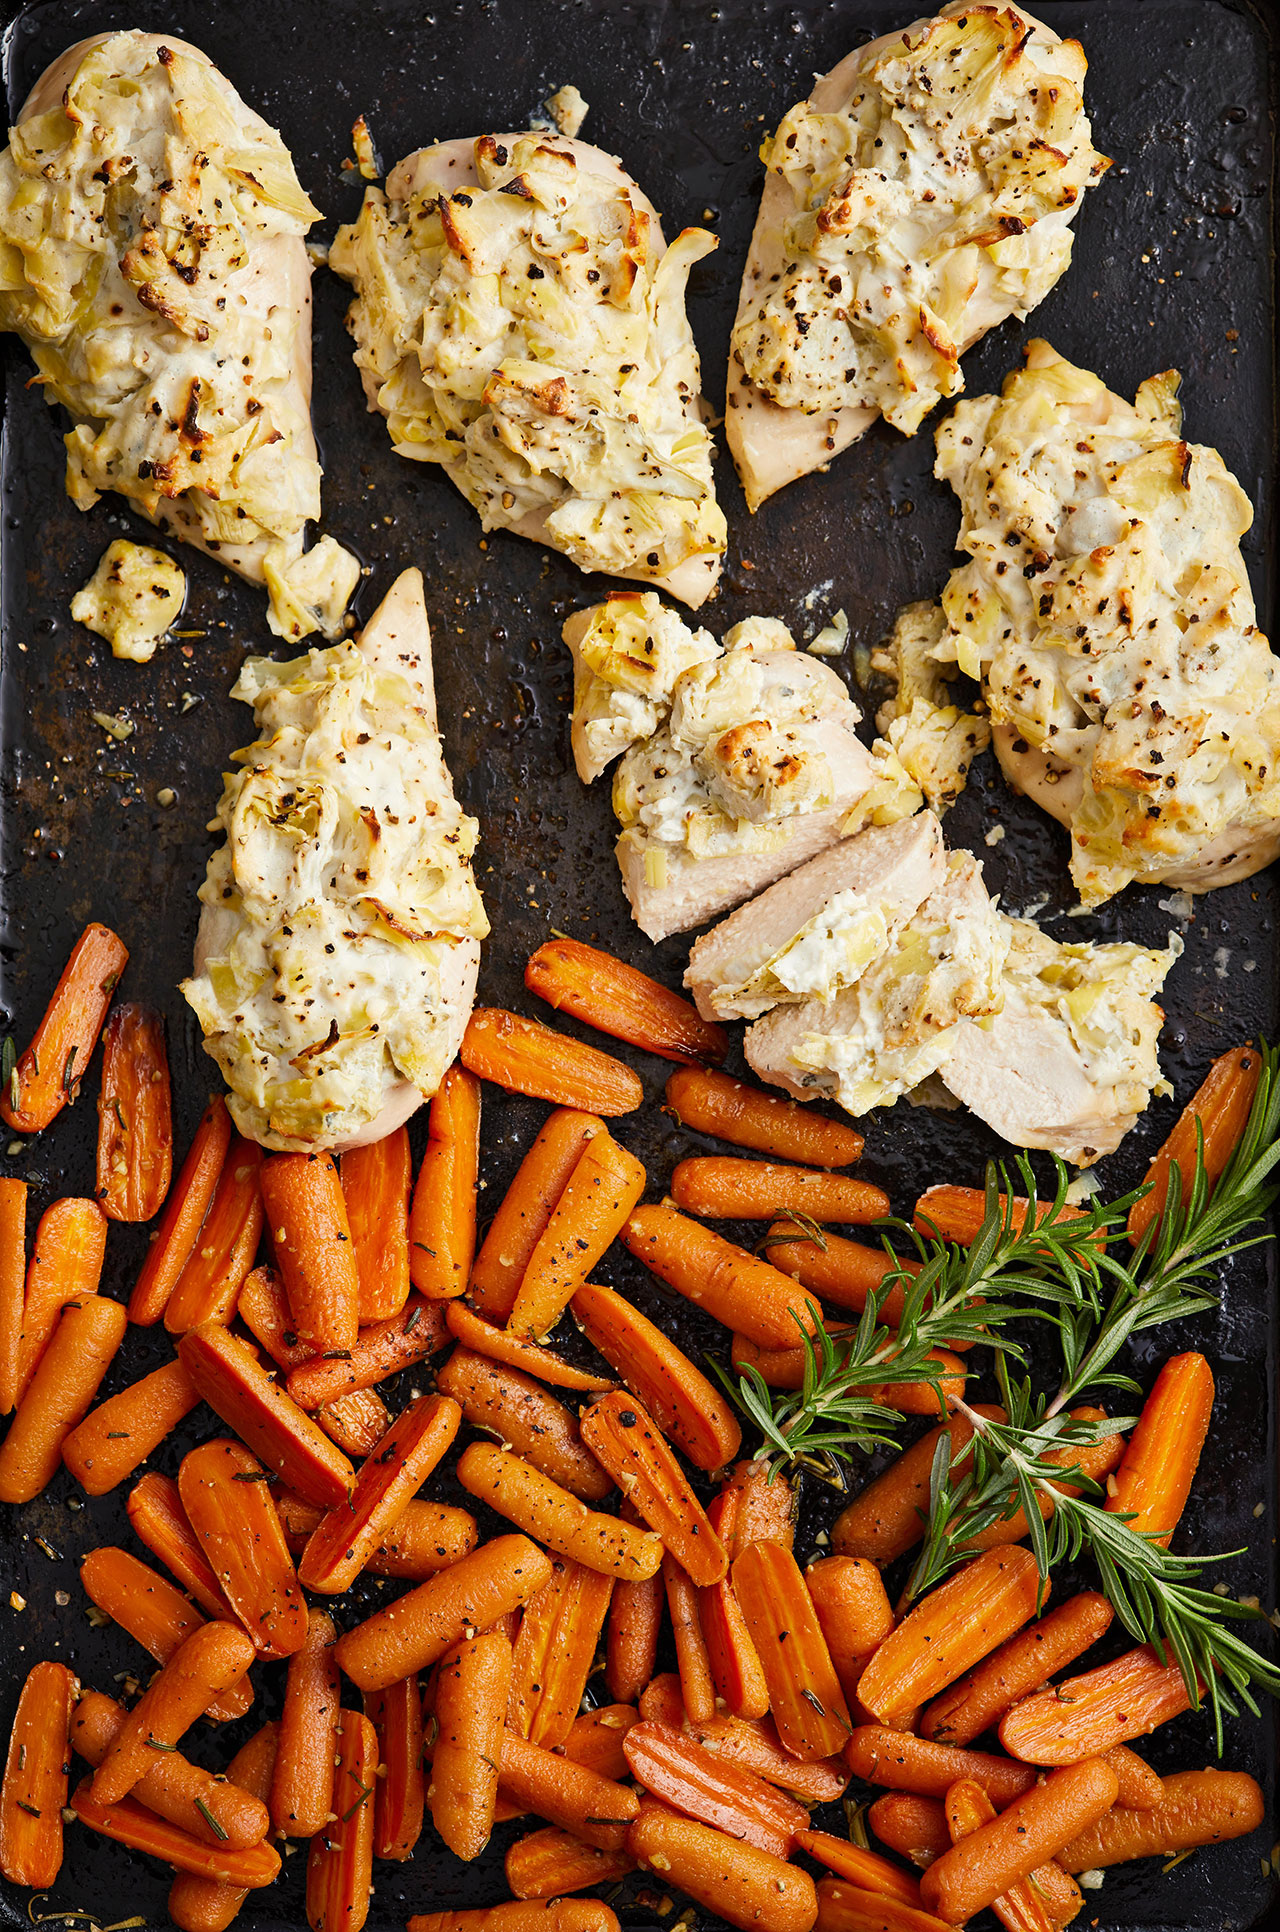 Artichoke and Cheese Chicken Breasts with Rosemary Carrots